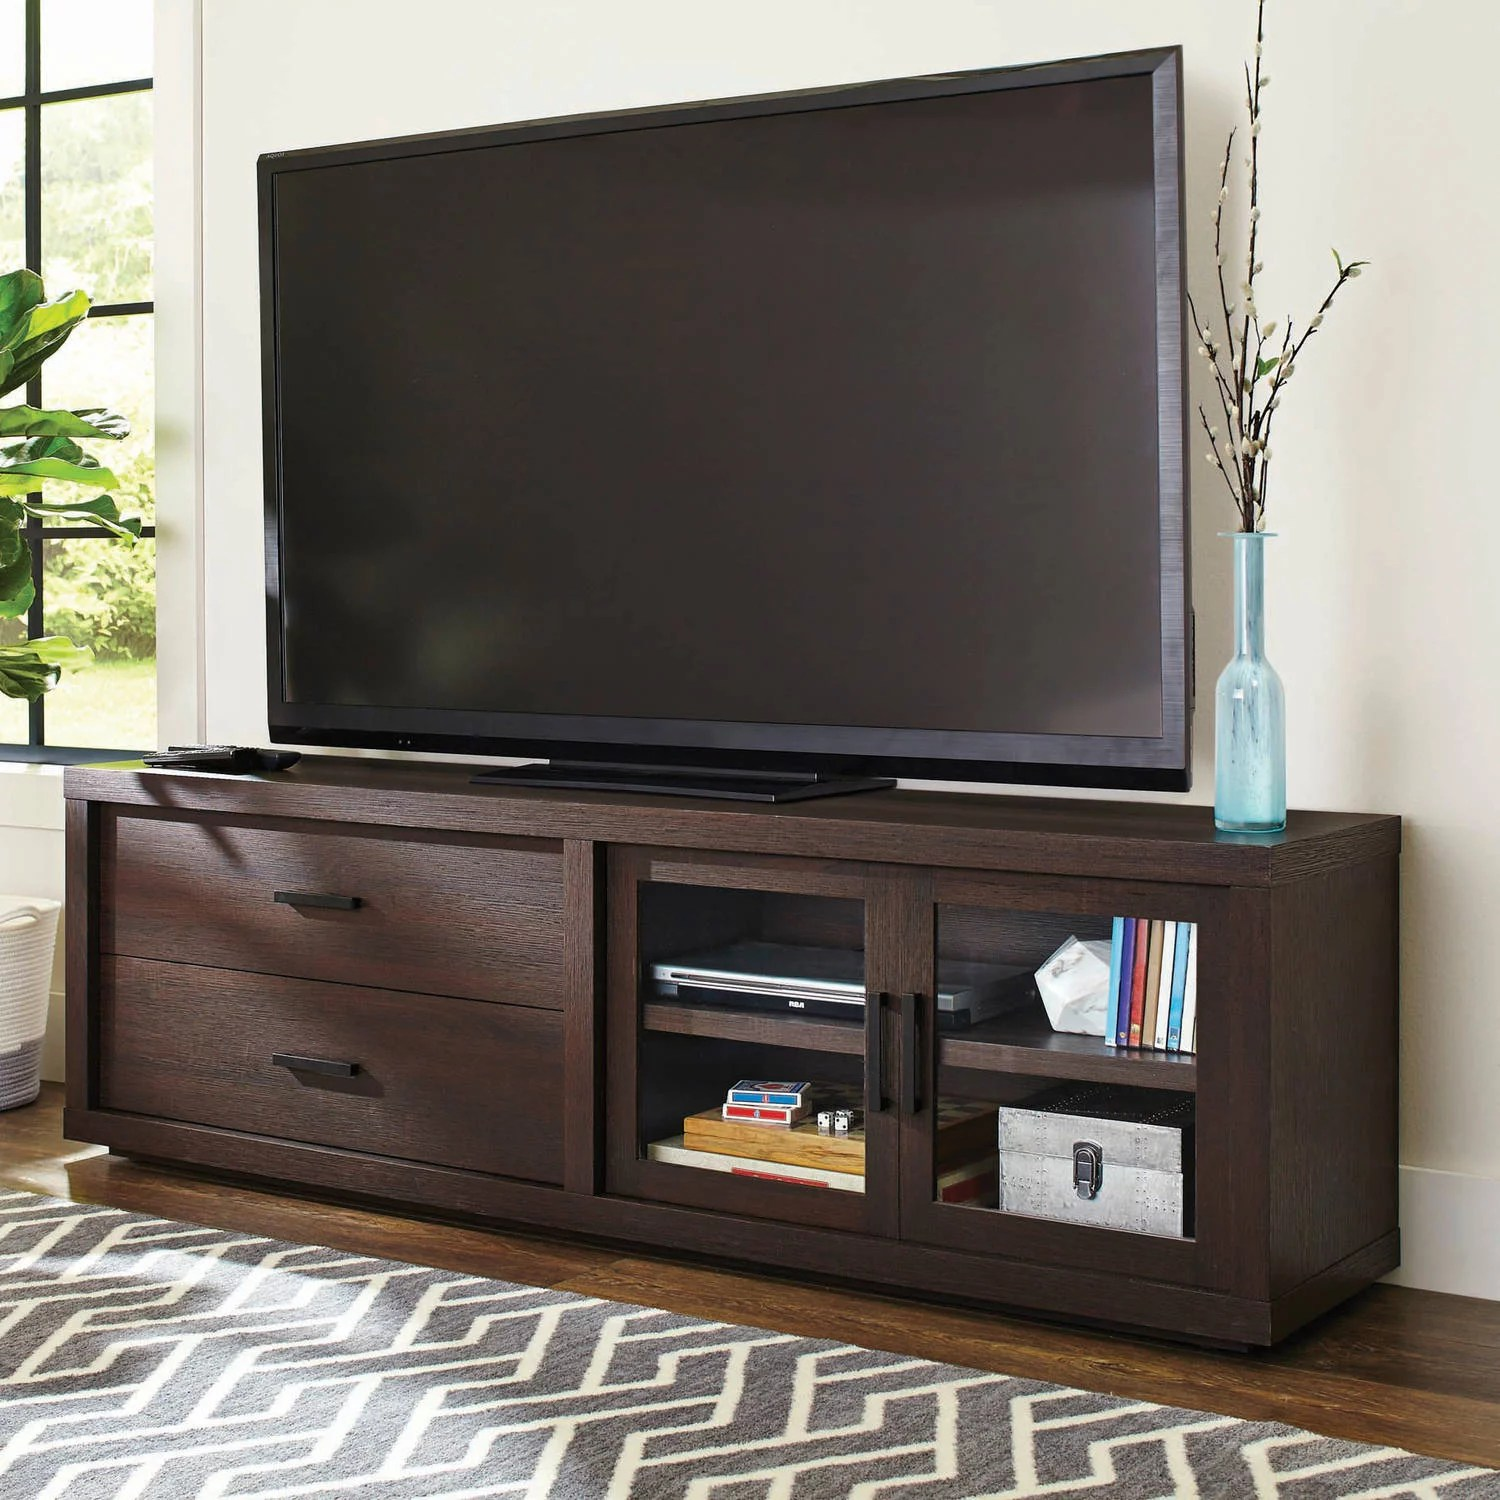 Design Tv Rack Cool Tv Rack With Tv Rack With Design Tv Rack Better Homes Gardens Steele Tv Stand For Tv S Up To 80